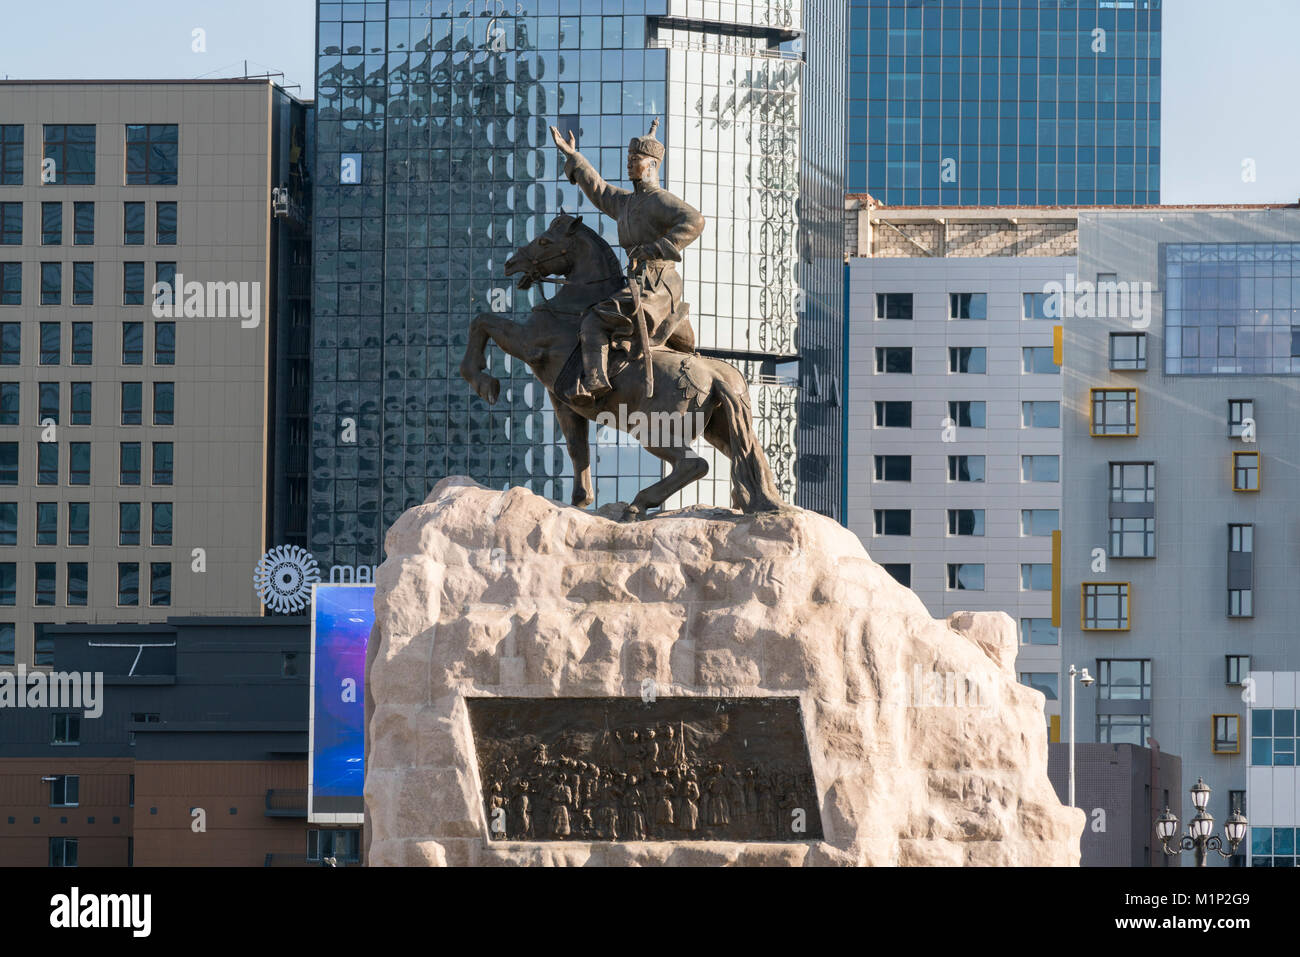 Damdin Sukhbaatar statue with skyscrapers in the background, Ulan Bator, Mongolia, Central Asia, Asia - Stock Image